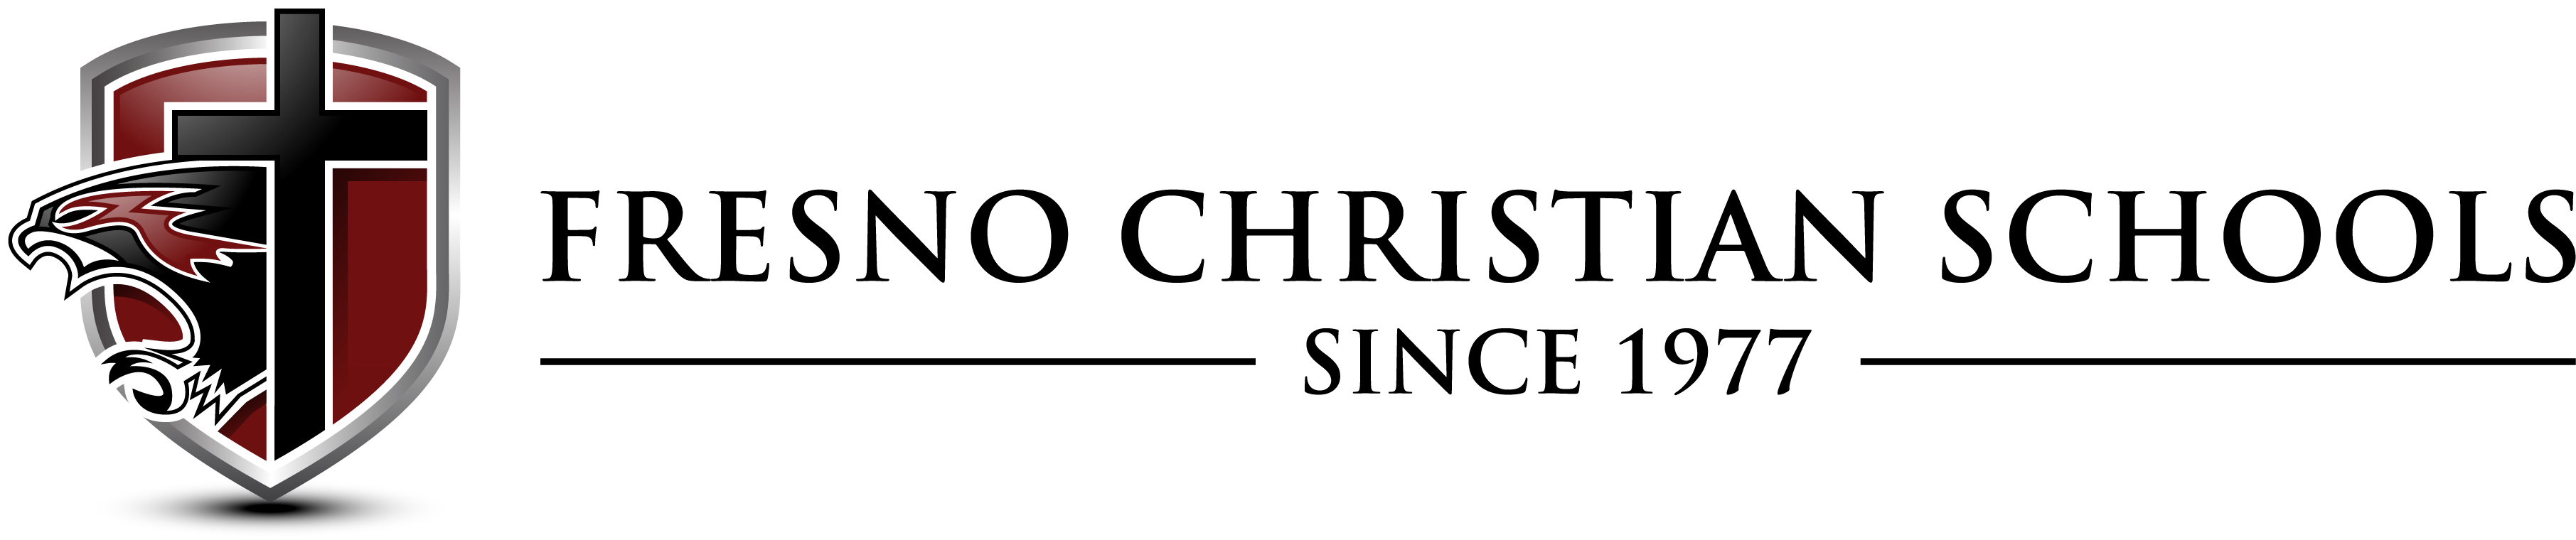 Fresno Christian Schools Logo